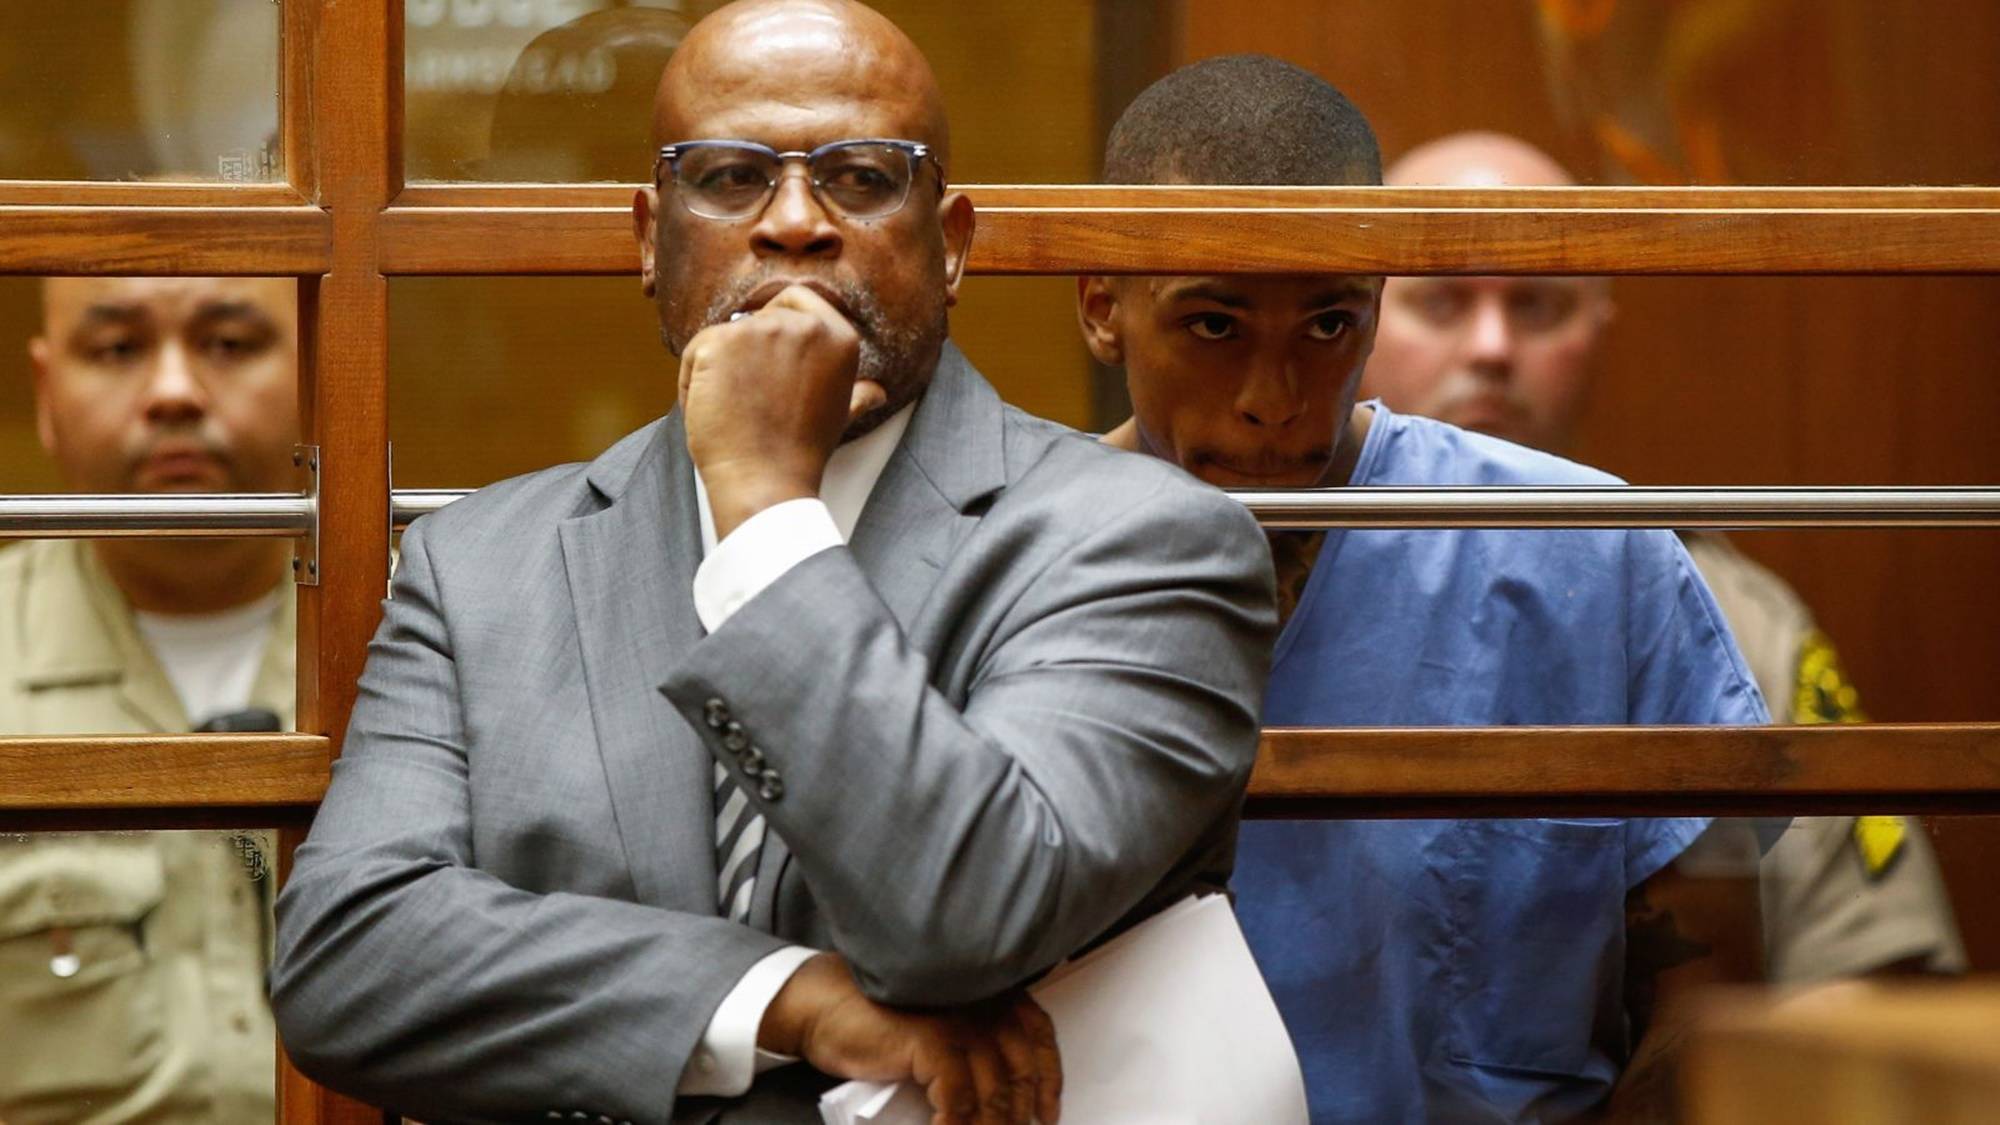 eric-holders-lawyer-chris-darden-did-not-tell-his-daughter-before-taking-the-case-and-she-now-has-to-deal-with-the-backlash